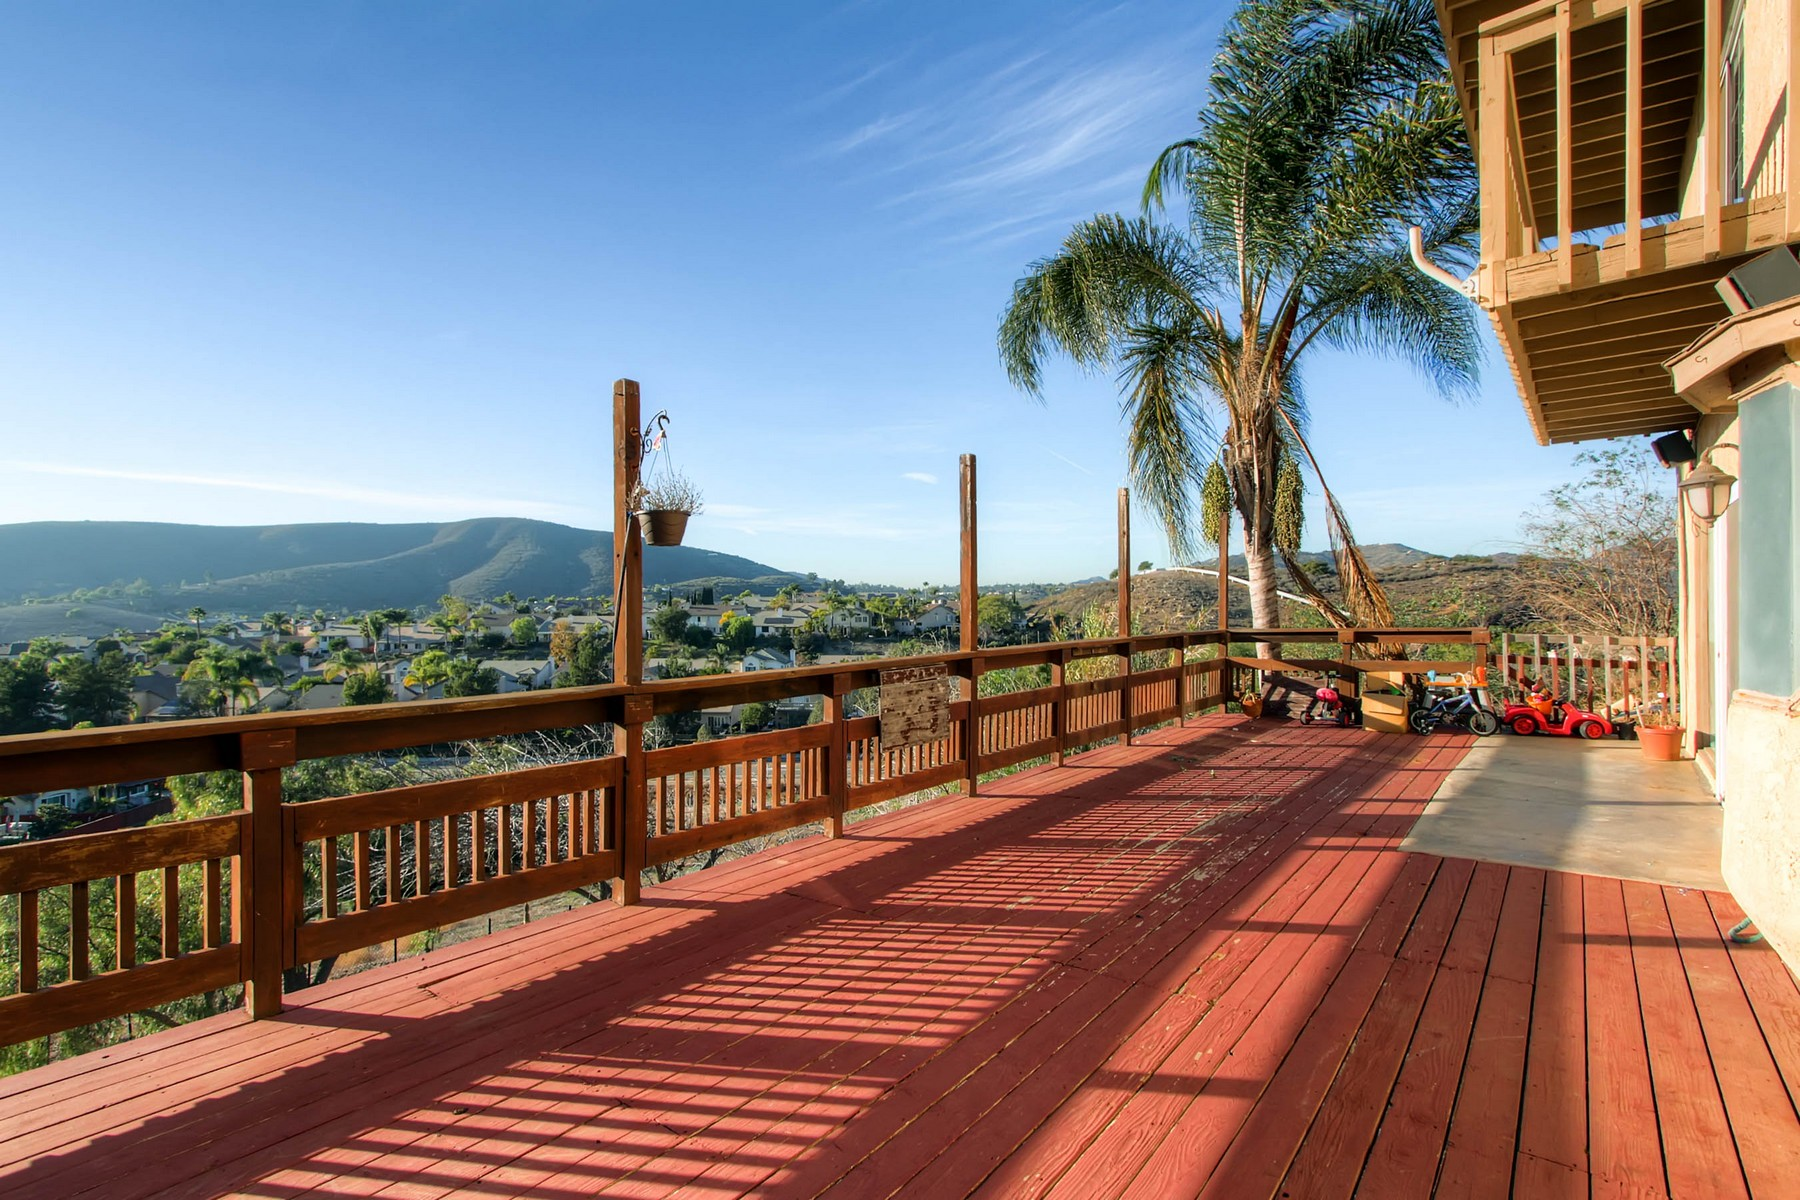 Property For Sale at San Marcos, California